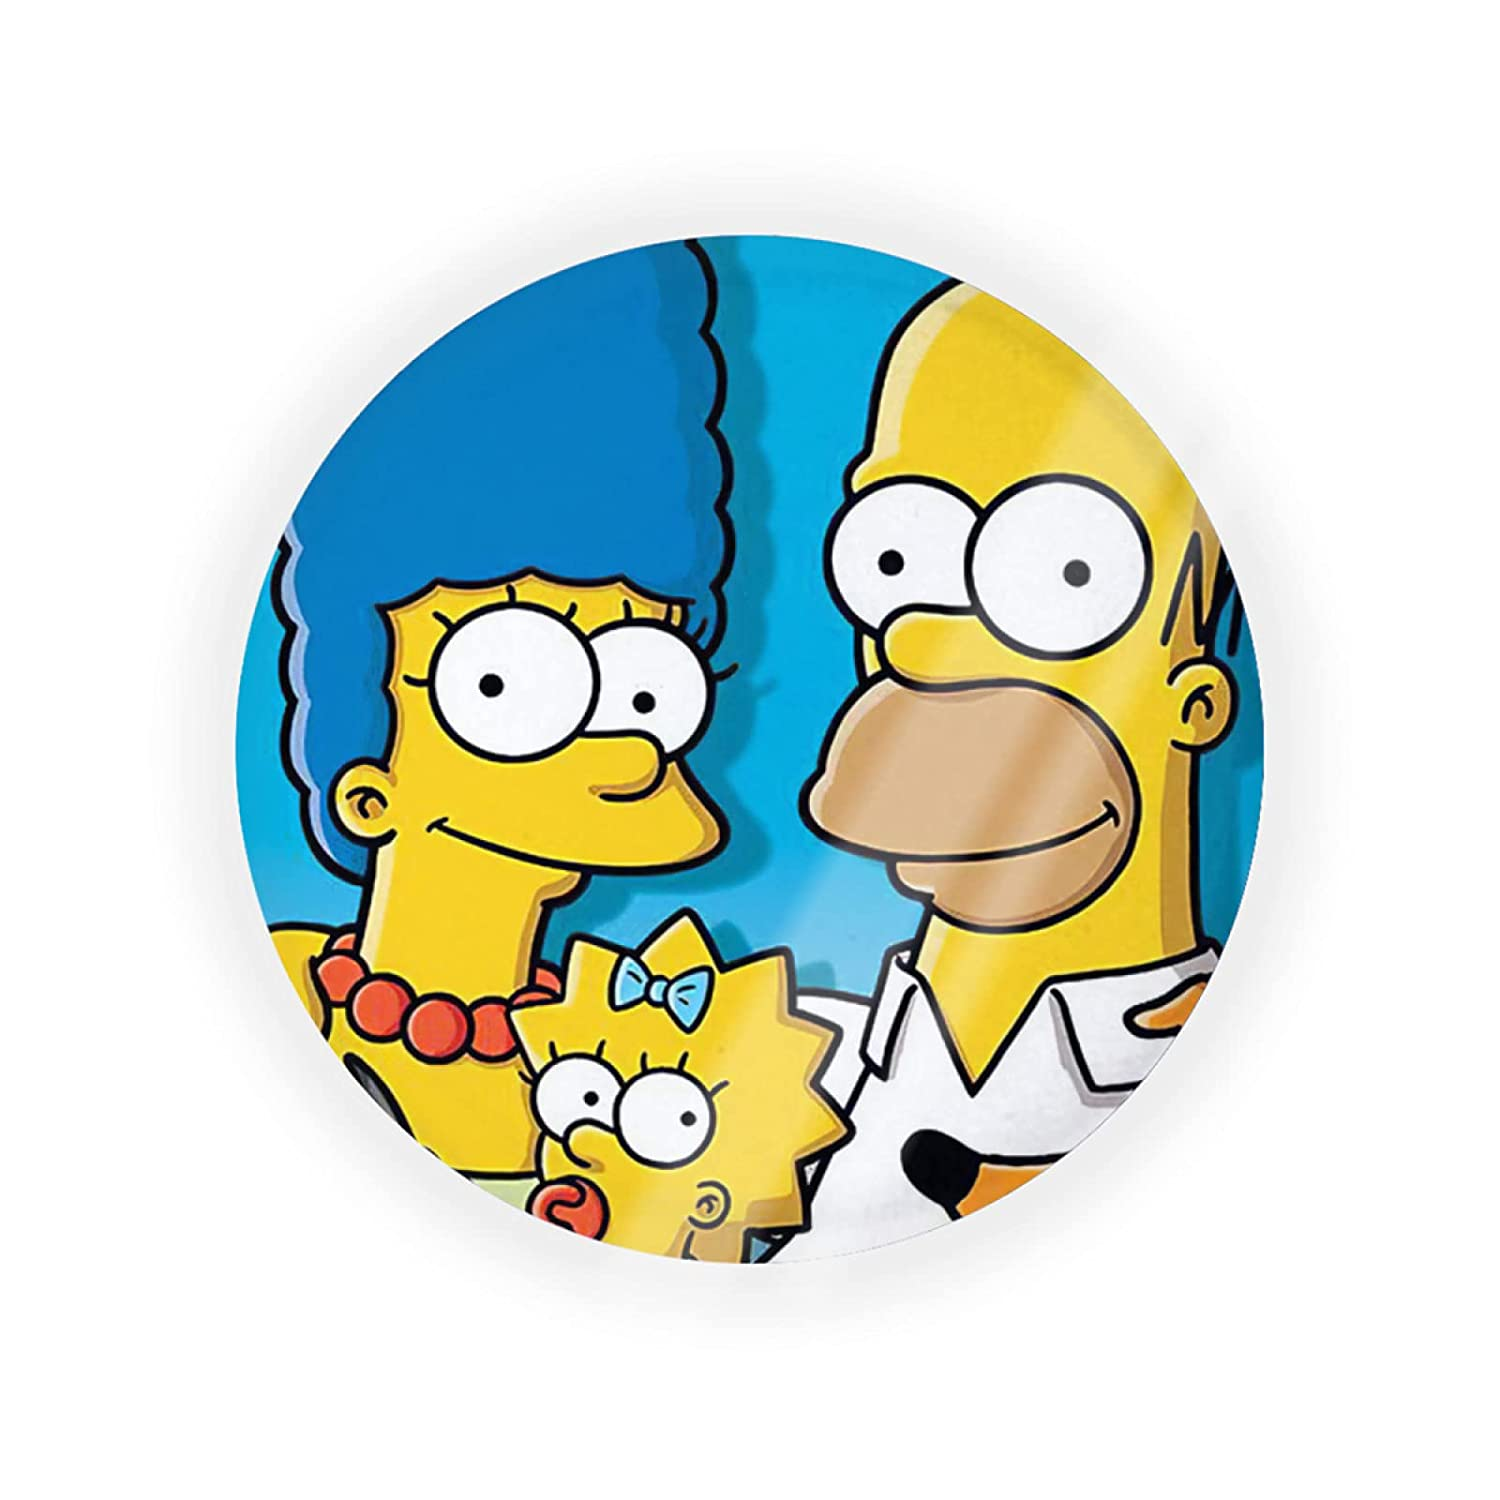 Yunlenb The Simpsons Portable Make-up Air Container Powder Cushi New Free Shipping Max 48% OFF